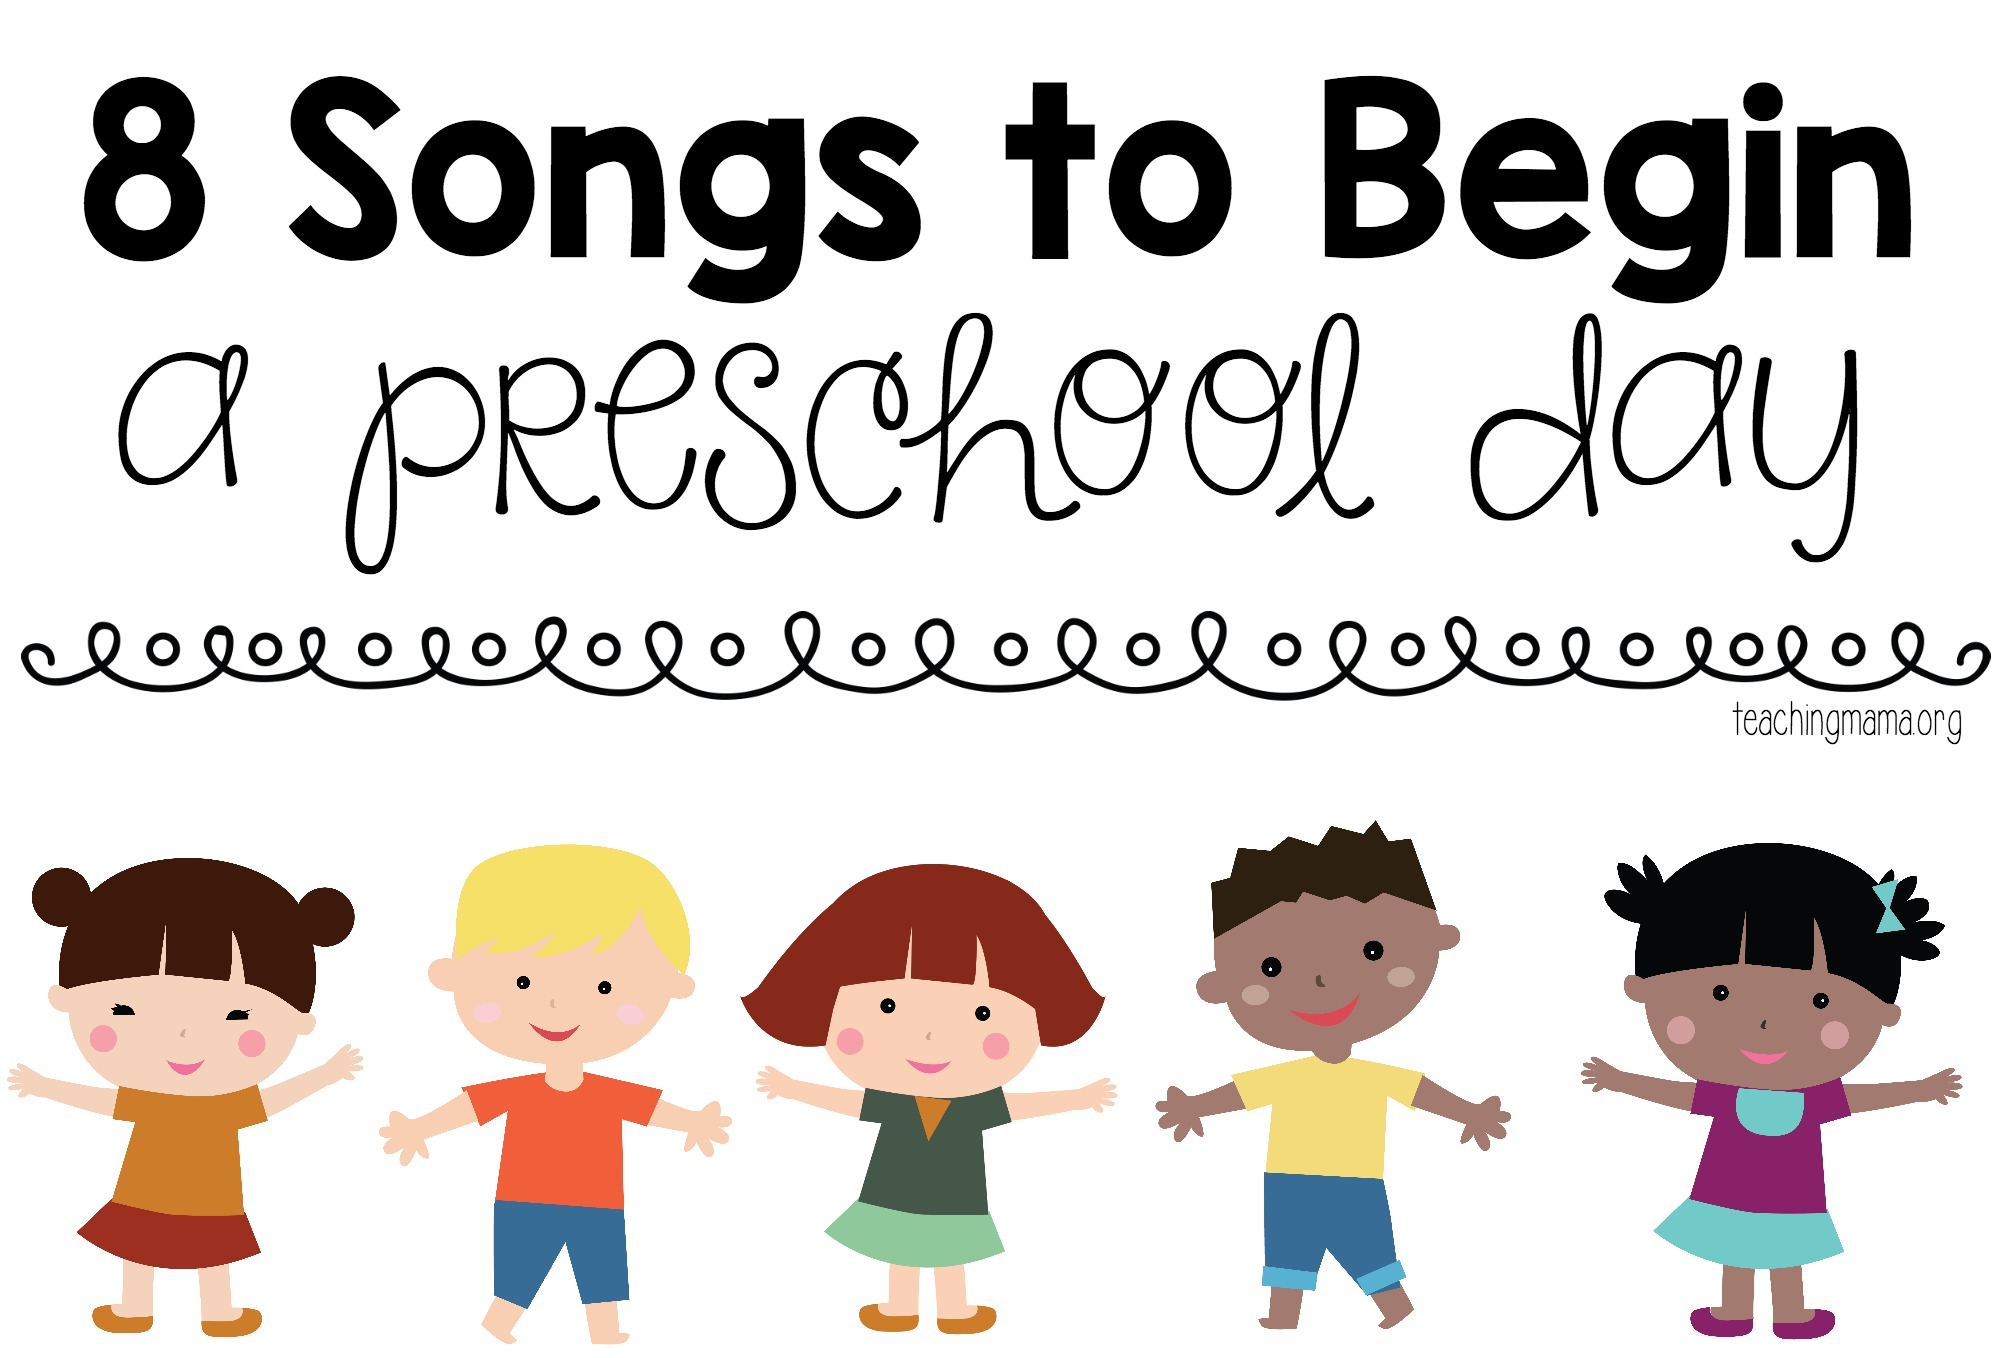 graphic about Make New Friends Song Printable named 8 Tunes toward Start a Preschool Working day